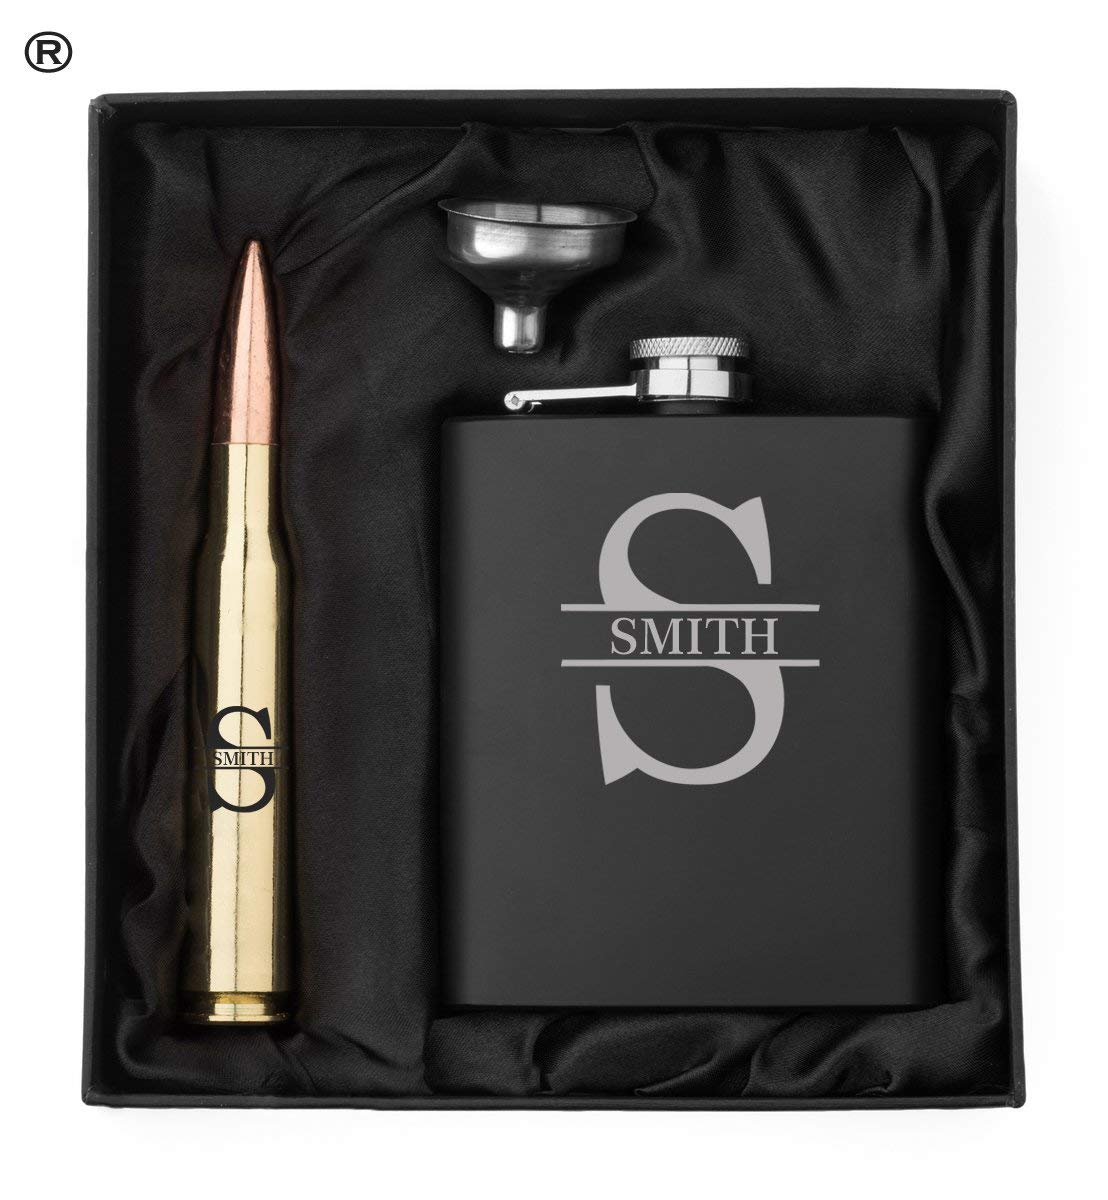 Monogram Initial Engraved Matte Black Hip Flask, Funnel and Brass 50 Caliber Bullet Bottle Opener Gift Box 50 Cal Custom Personalized